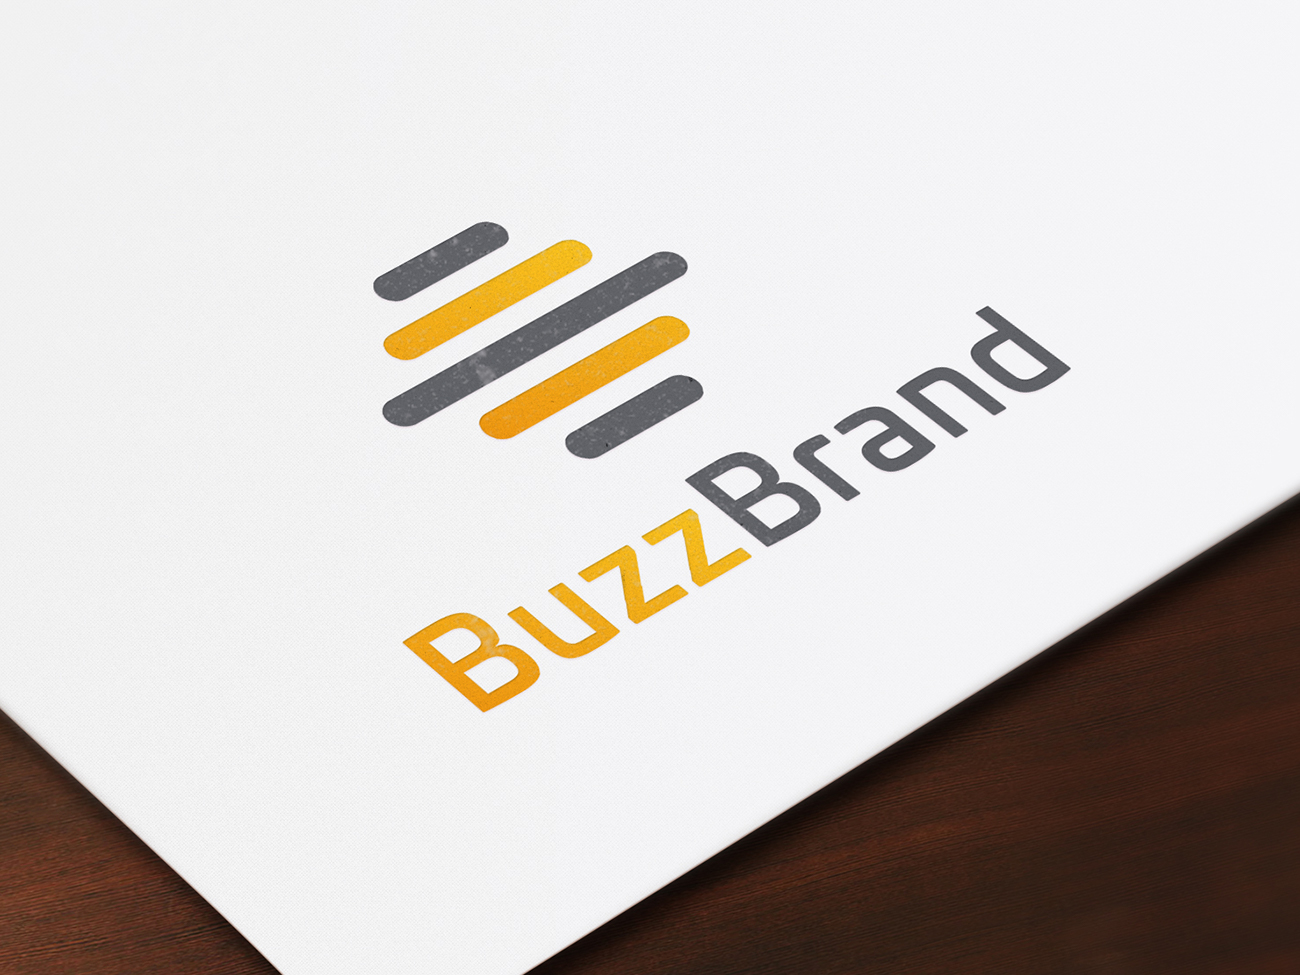 BuzzBrand logo printed on paper shown close up